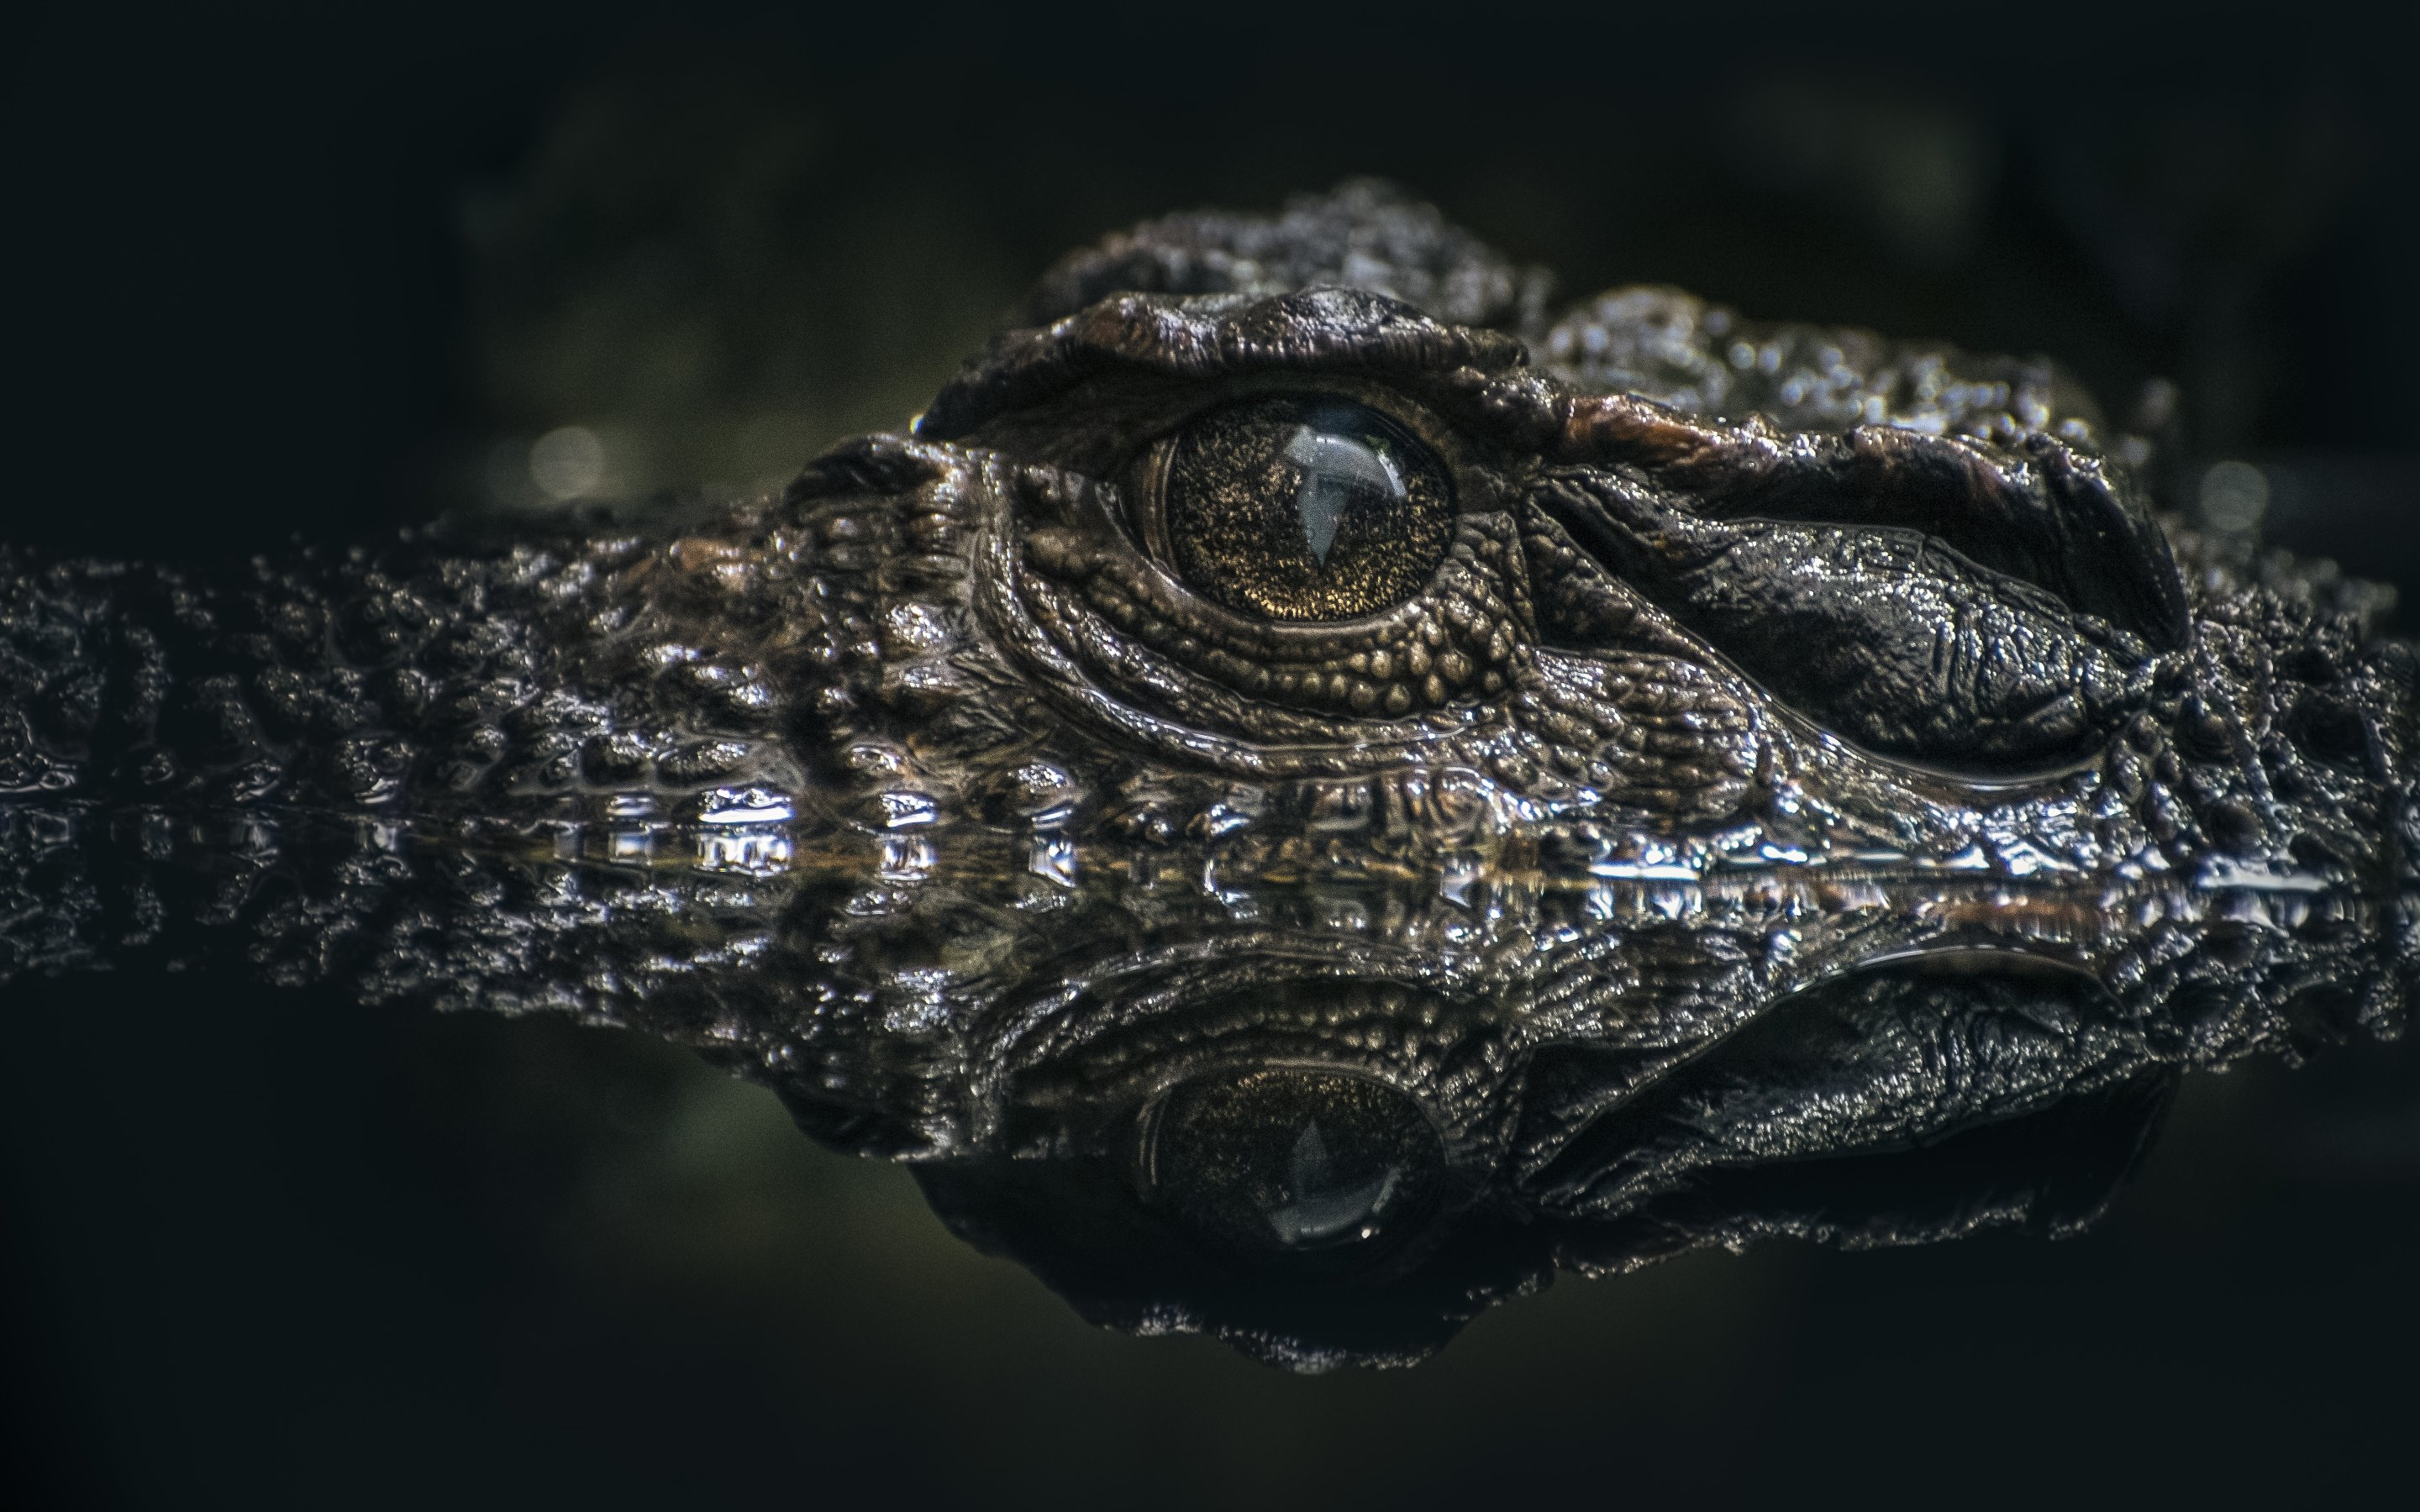 4K Crocodiles Wallpapers High Quality | Download Free